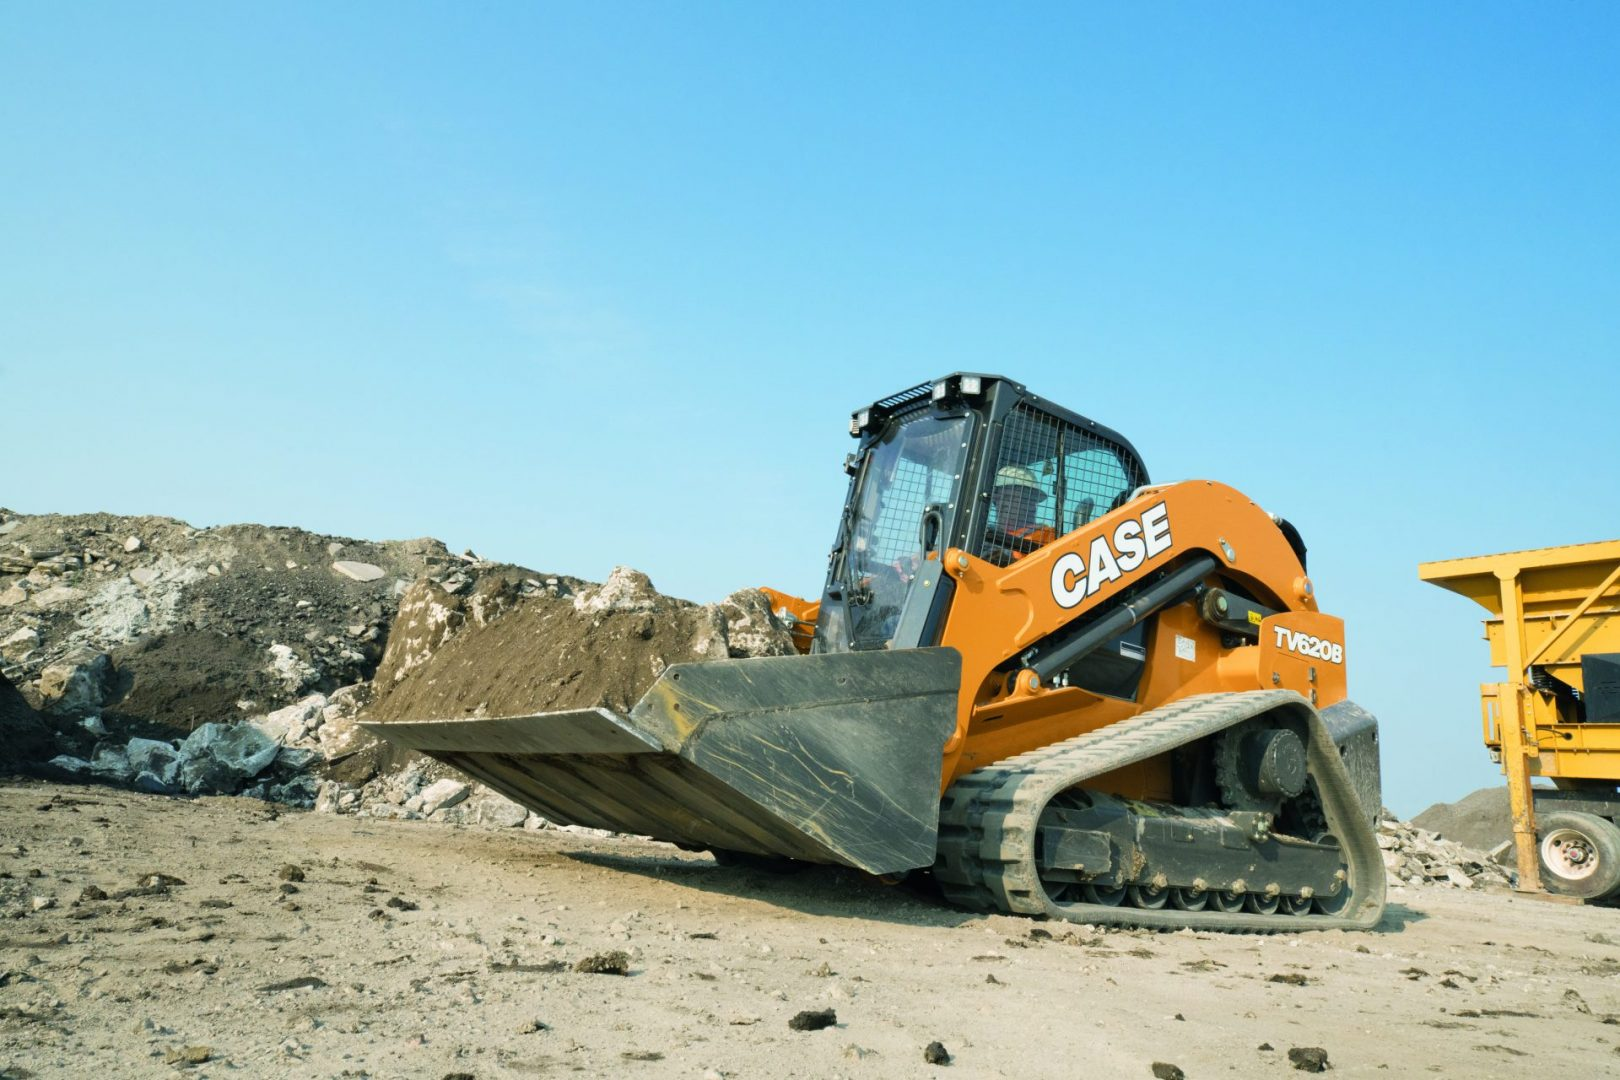 The CASE TV620B on-site with a bucket-full of material.